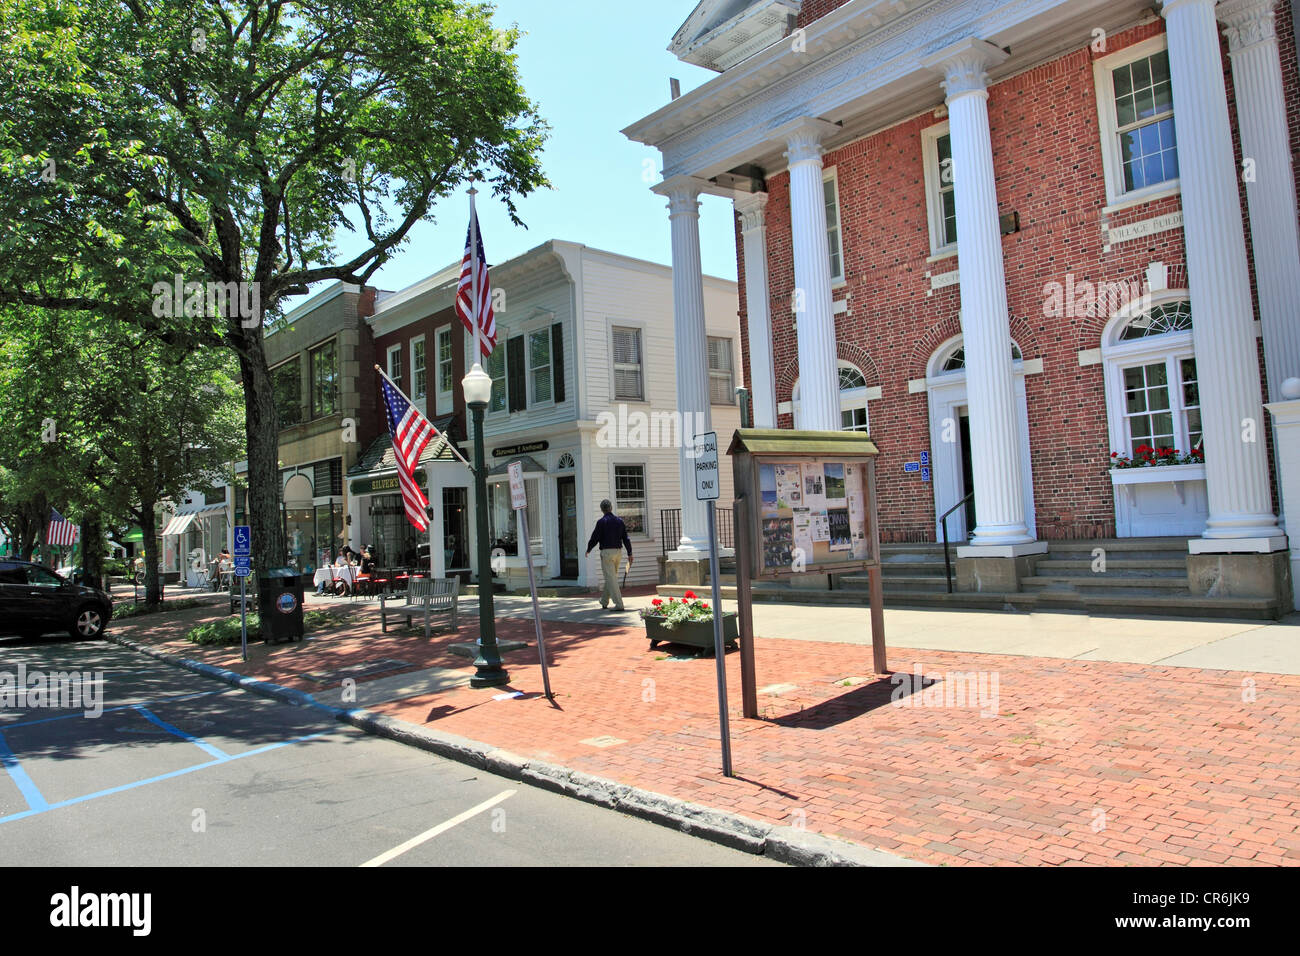 Village Hall Town of Southampton Long Island NY - Stock Image